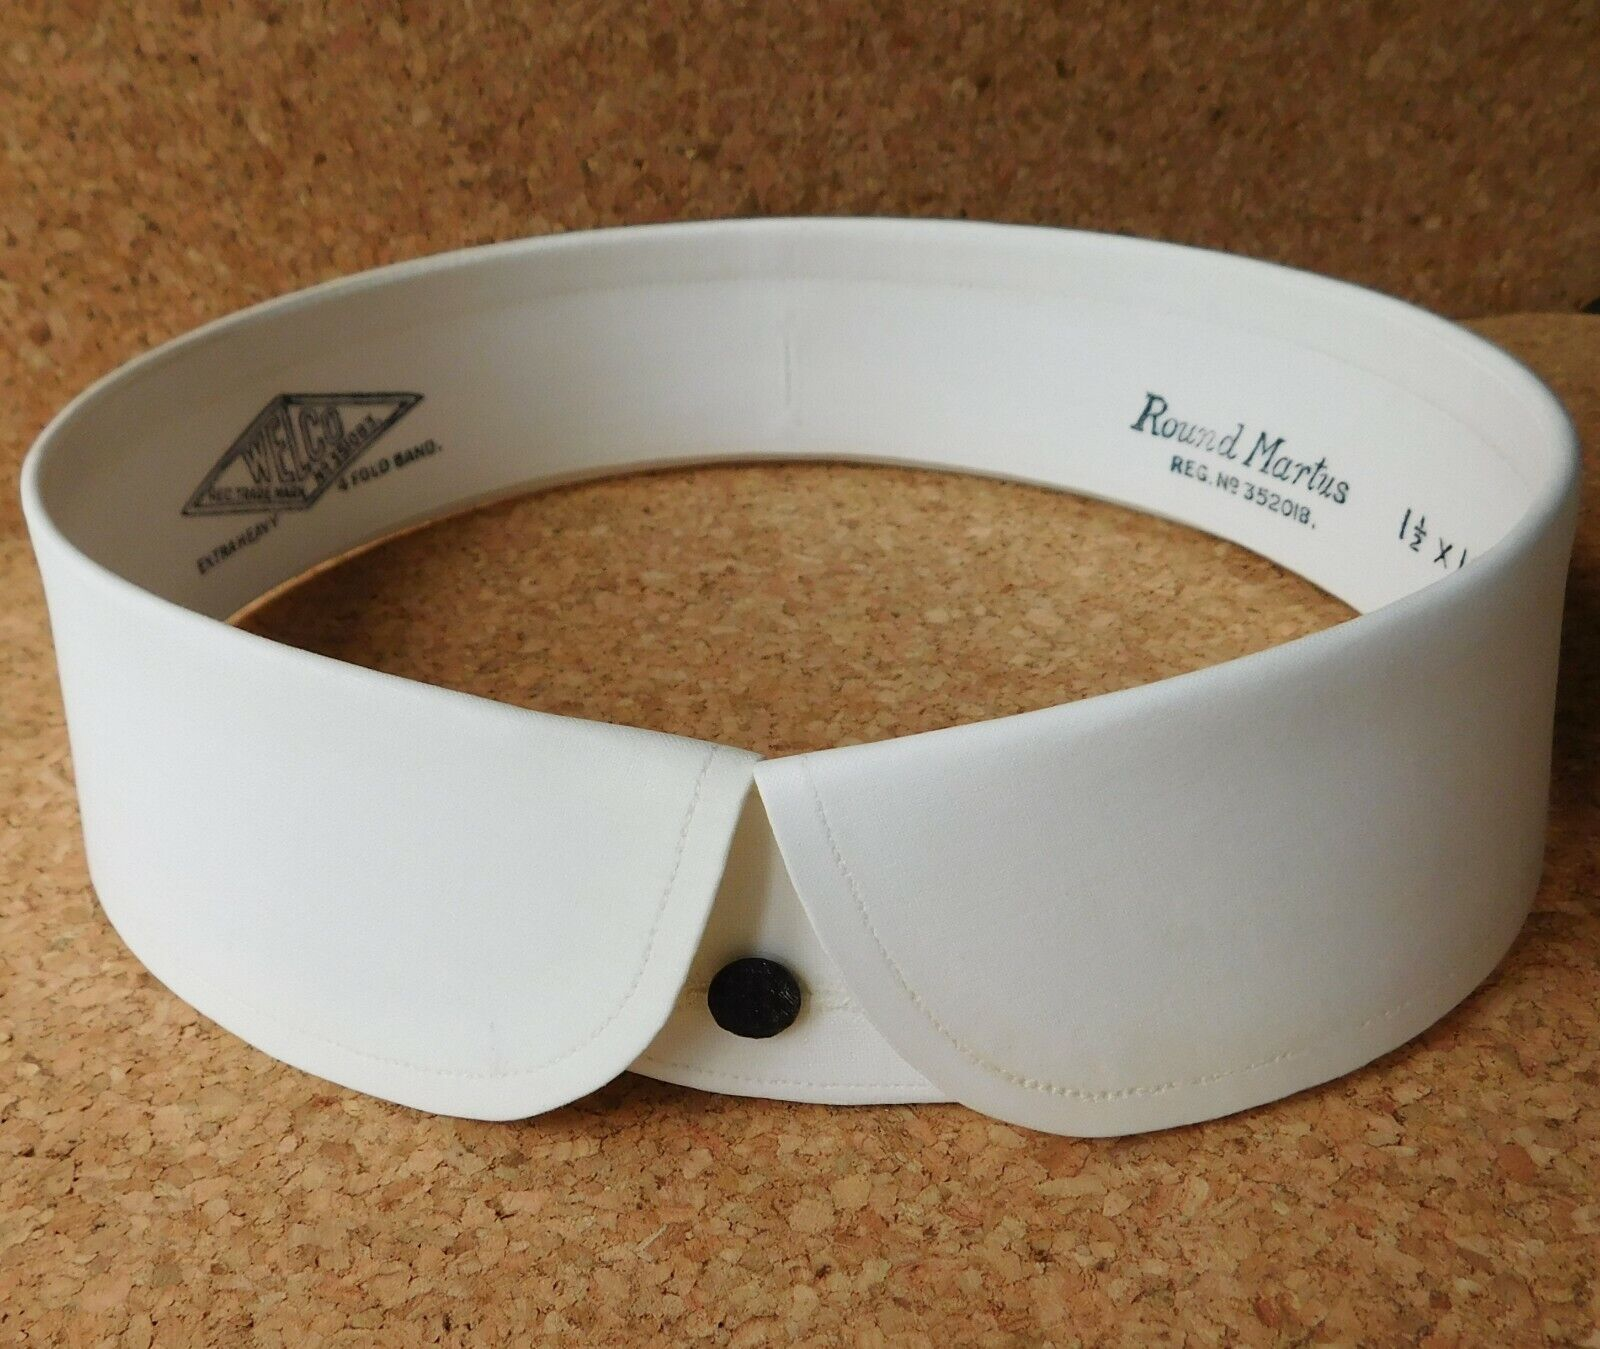 "Vintage Welco collar size 18.5"" Round Martus detachable UNUSED starched FADED"